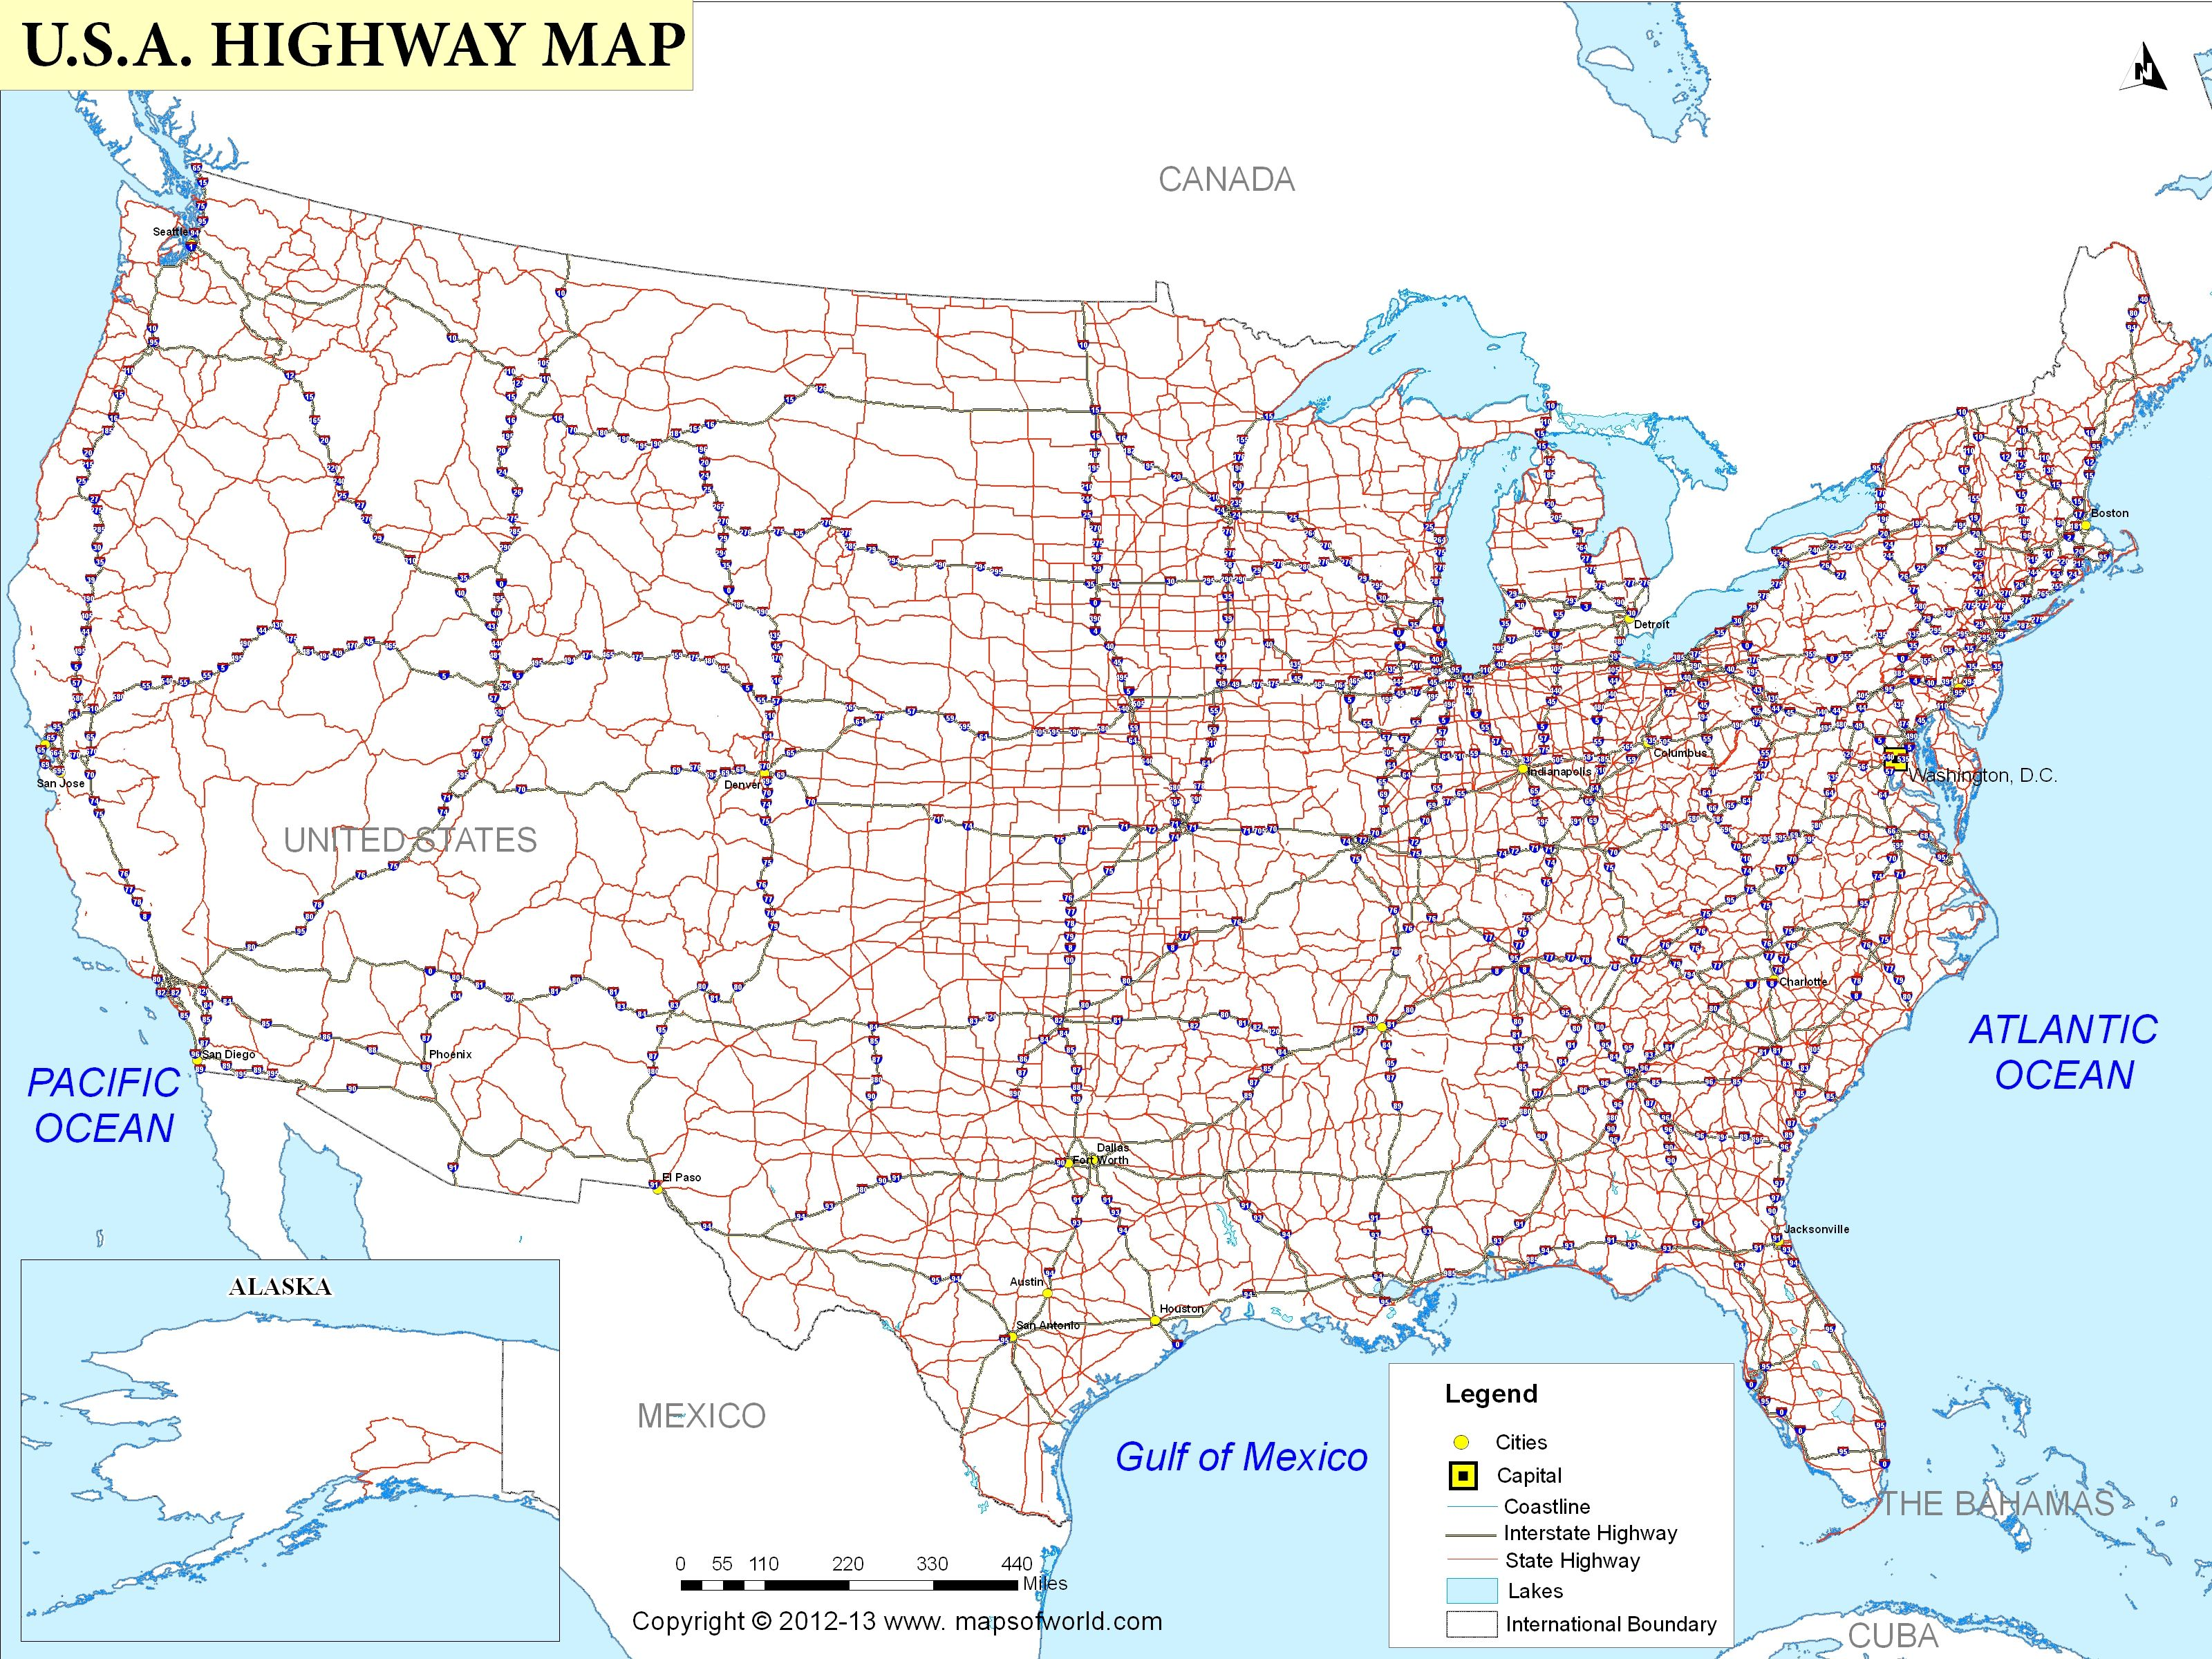 US Highway Map in 2019 | Usa travel map, Highway map, United ... on u.s. route 1, us route 20 map, national highway system, hobbs map, highway map, pan-american highway, u.s. route 66, us route 84 map, delco map, heartland map,